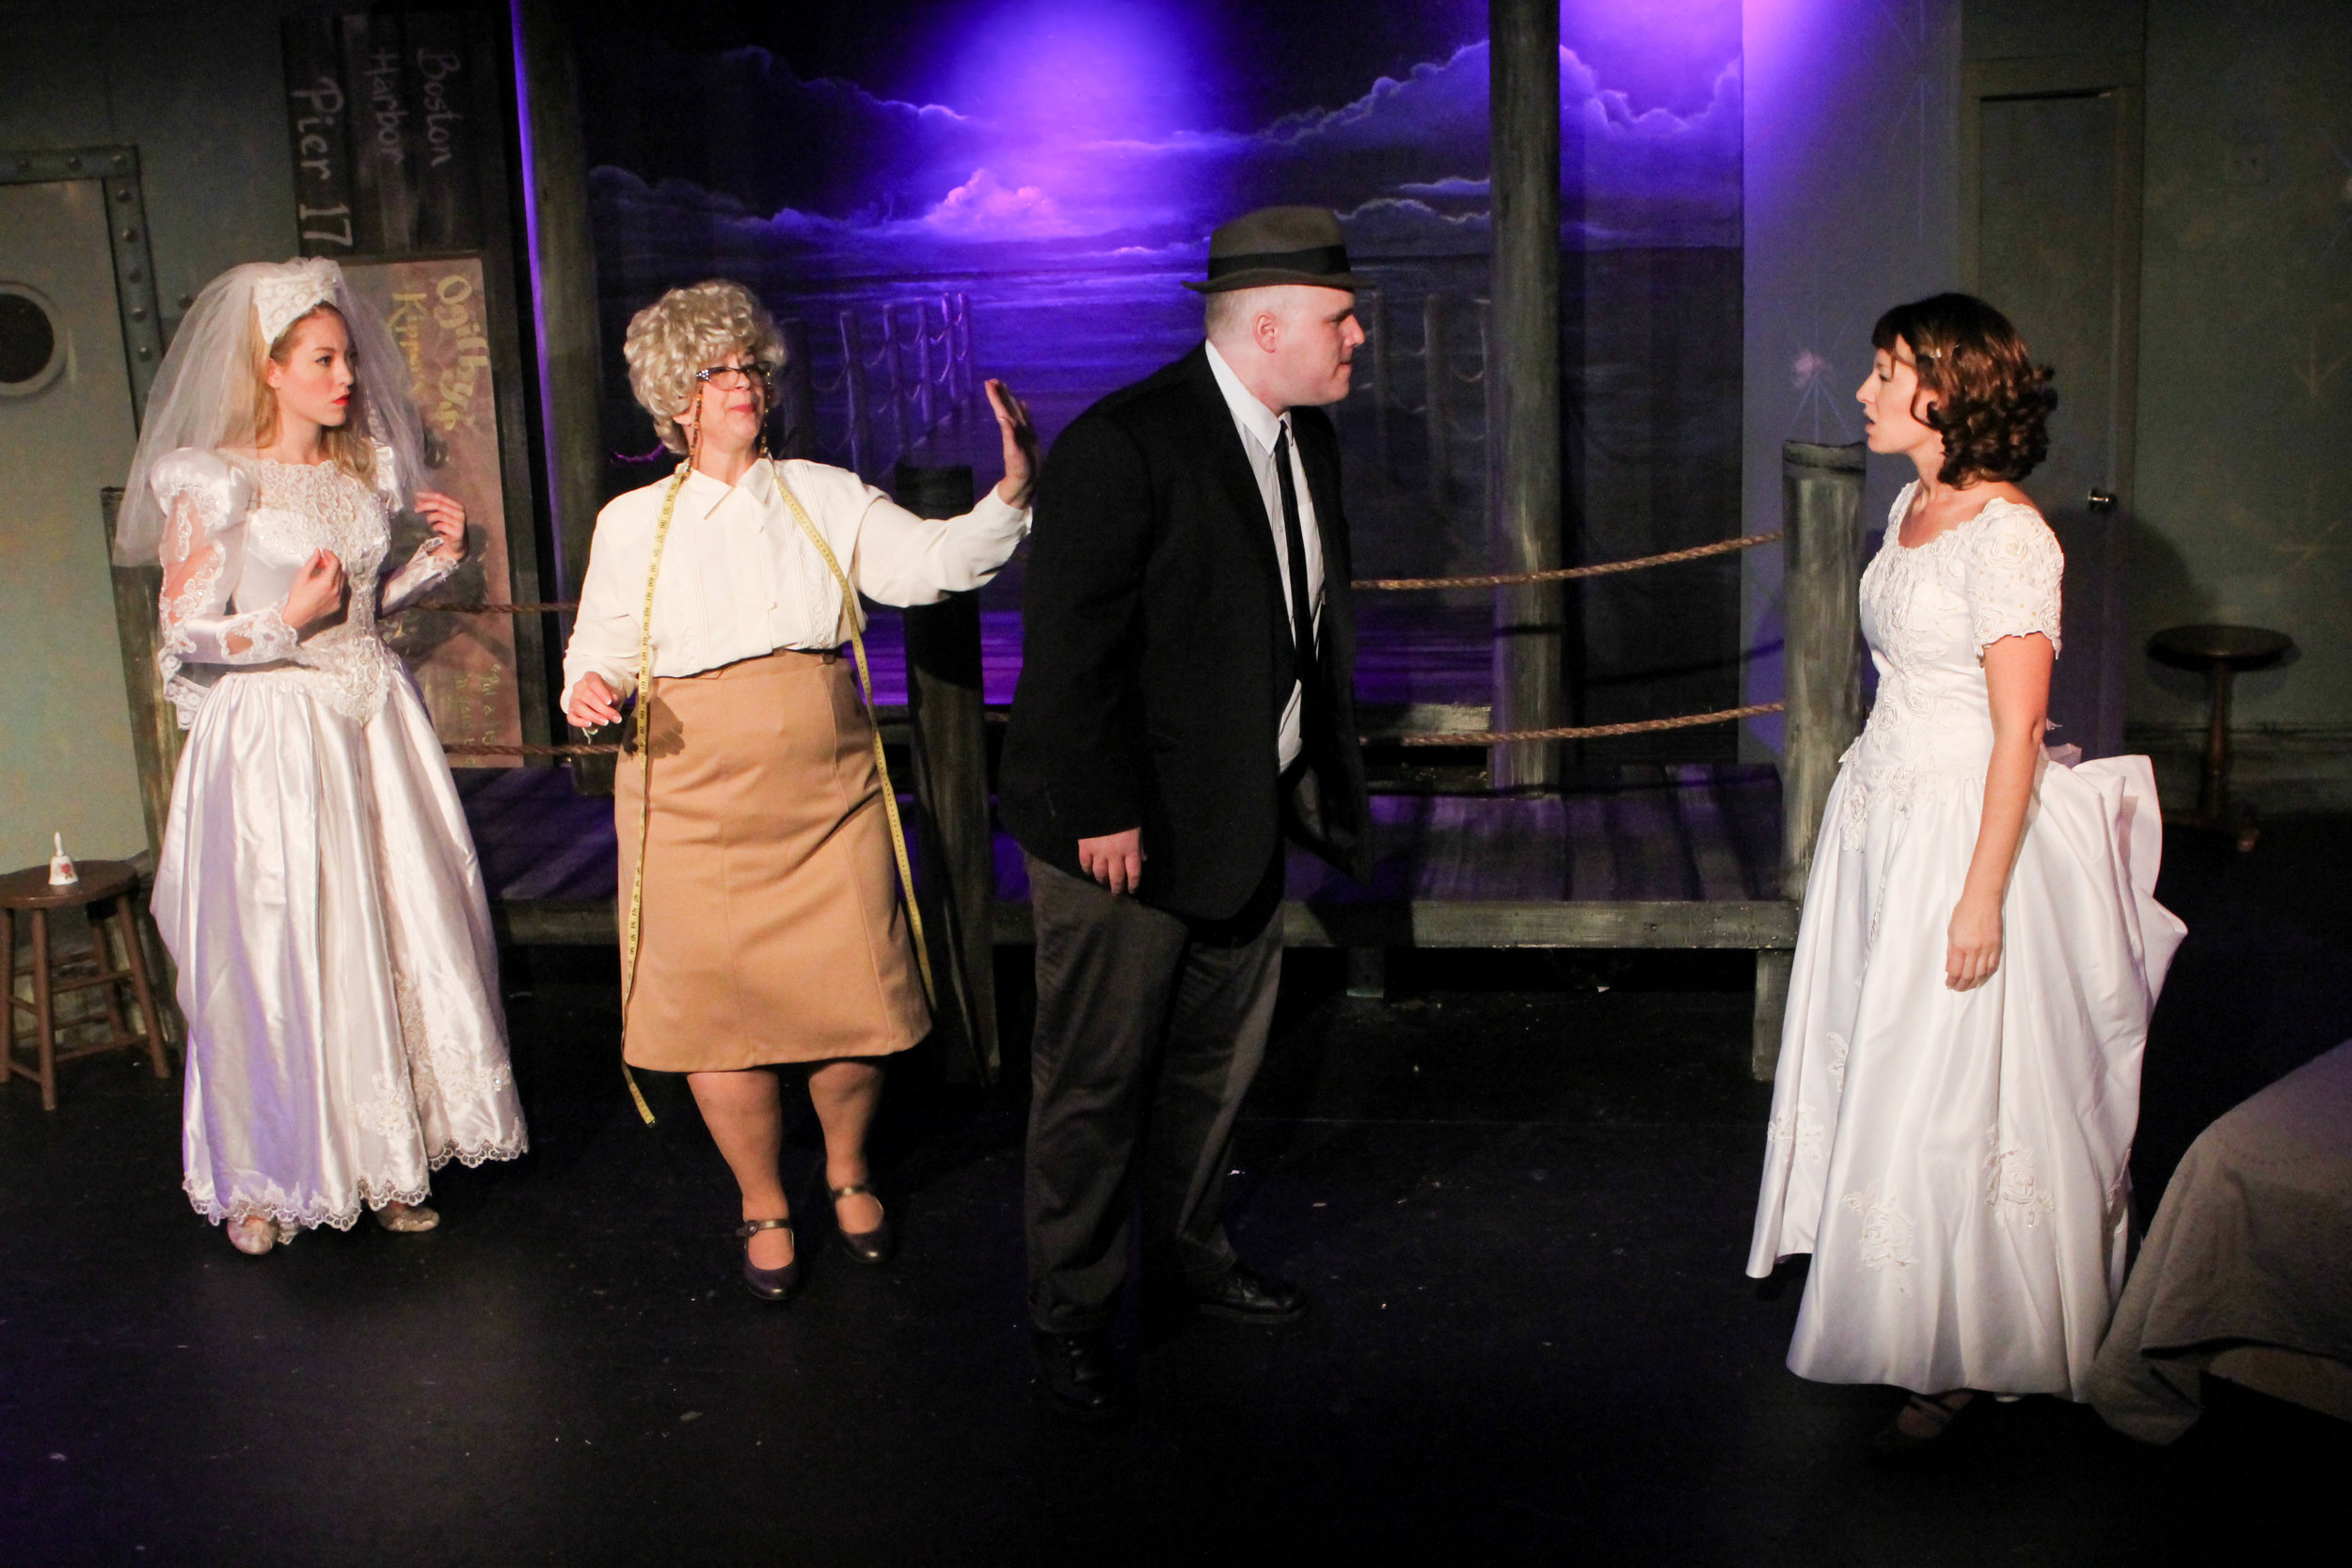 """G-man Frank (John Reilly) confronts his fiancé Maggie (Cayla Anderson) at a dress shop where Lynn (Stephanie Nilsen) is also trying on dresses suggested by the shop's owner (Rebecca Richards) in a scene from Lake Country Playhouse's """"Red Herring."""""""